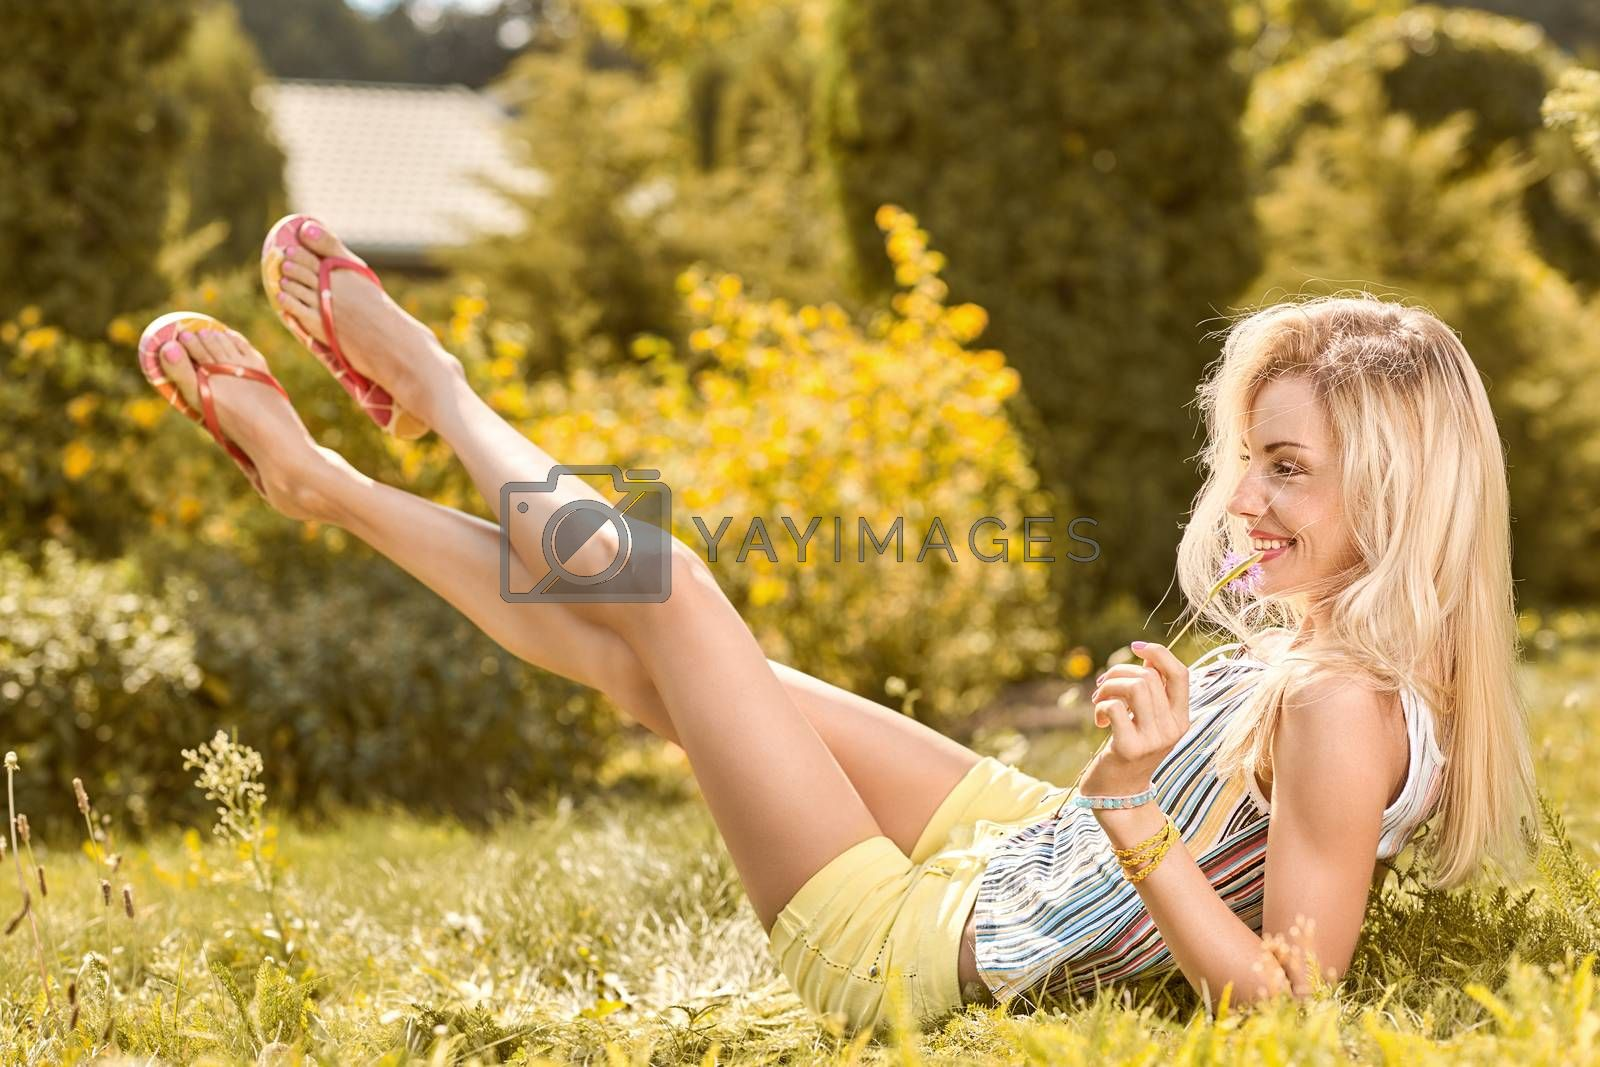 Beauty playful woman relax in summer garden smiling on grass, people, outdoors, bokeh. Attractive happy blonde girl enjoying nature, harmony on meadow, lifestyle. Sunny day, forest, flowers, copyspace